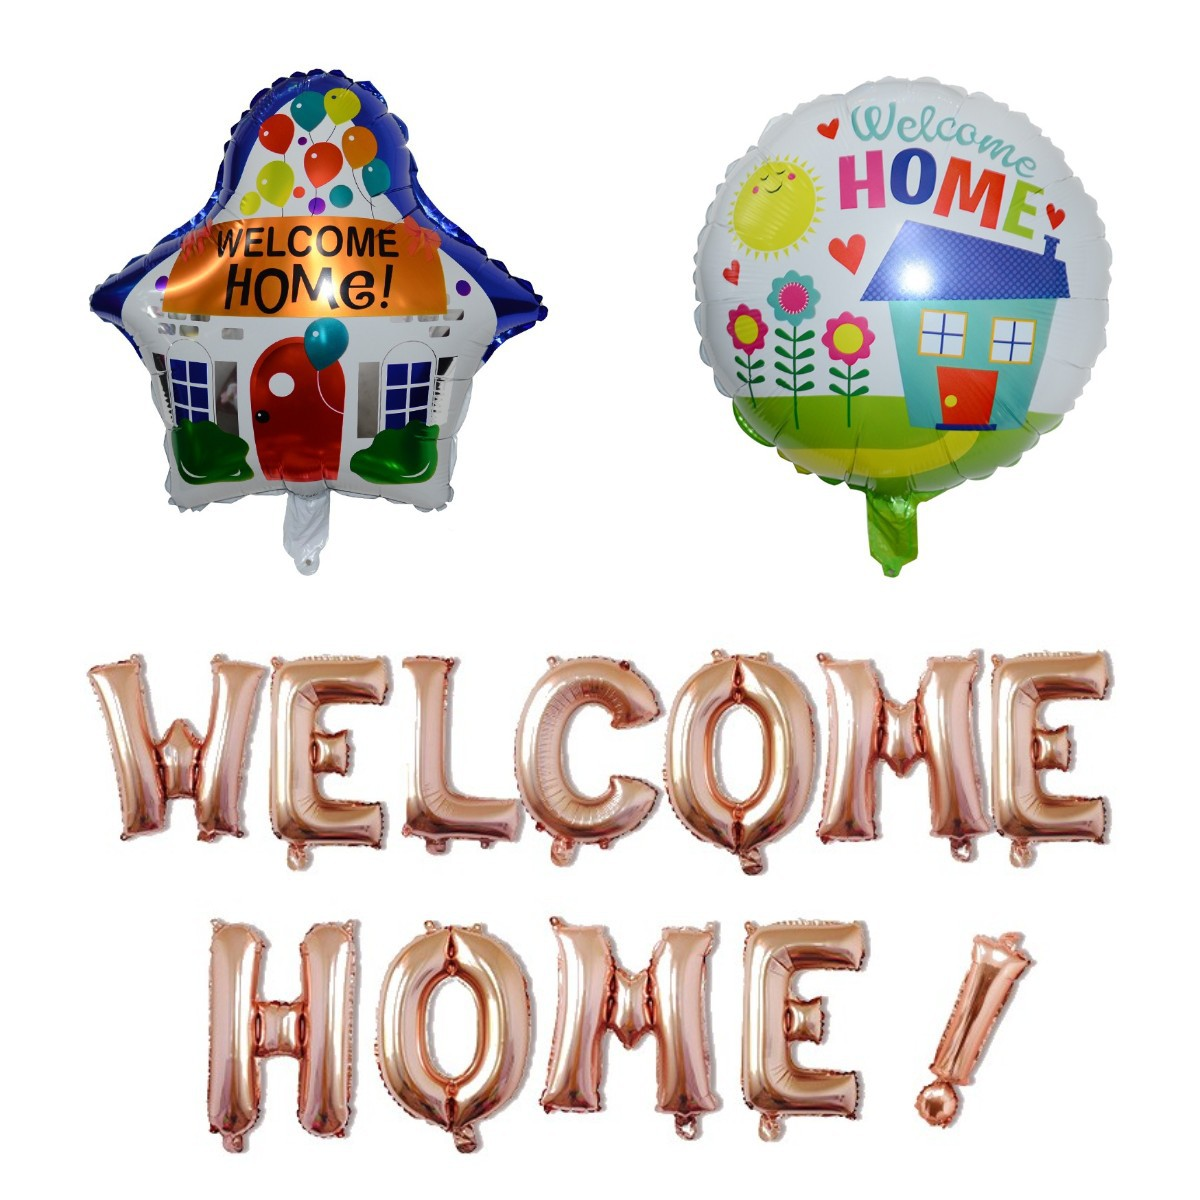 Cross Border For Welcome Home! Welcome Home Letter Balloon Party Balloon Set Aluminum Film Balloon